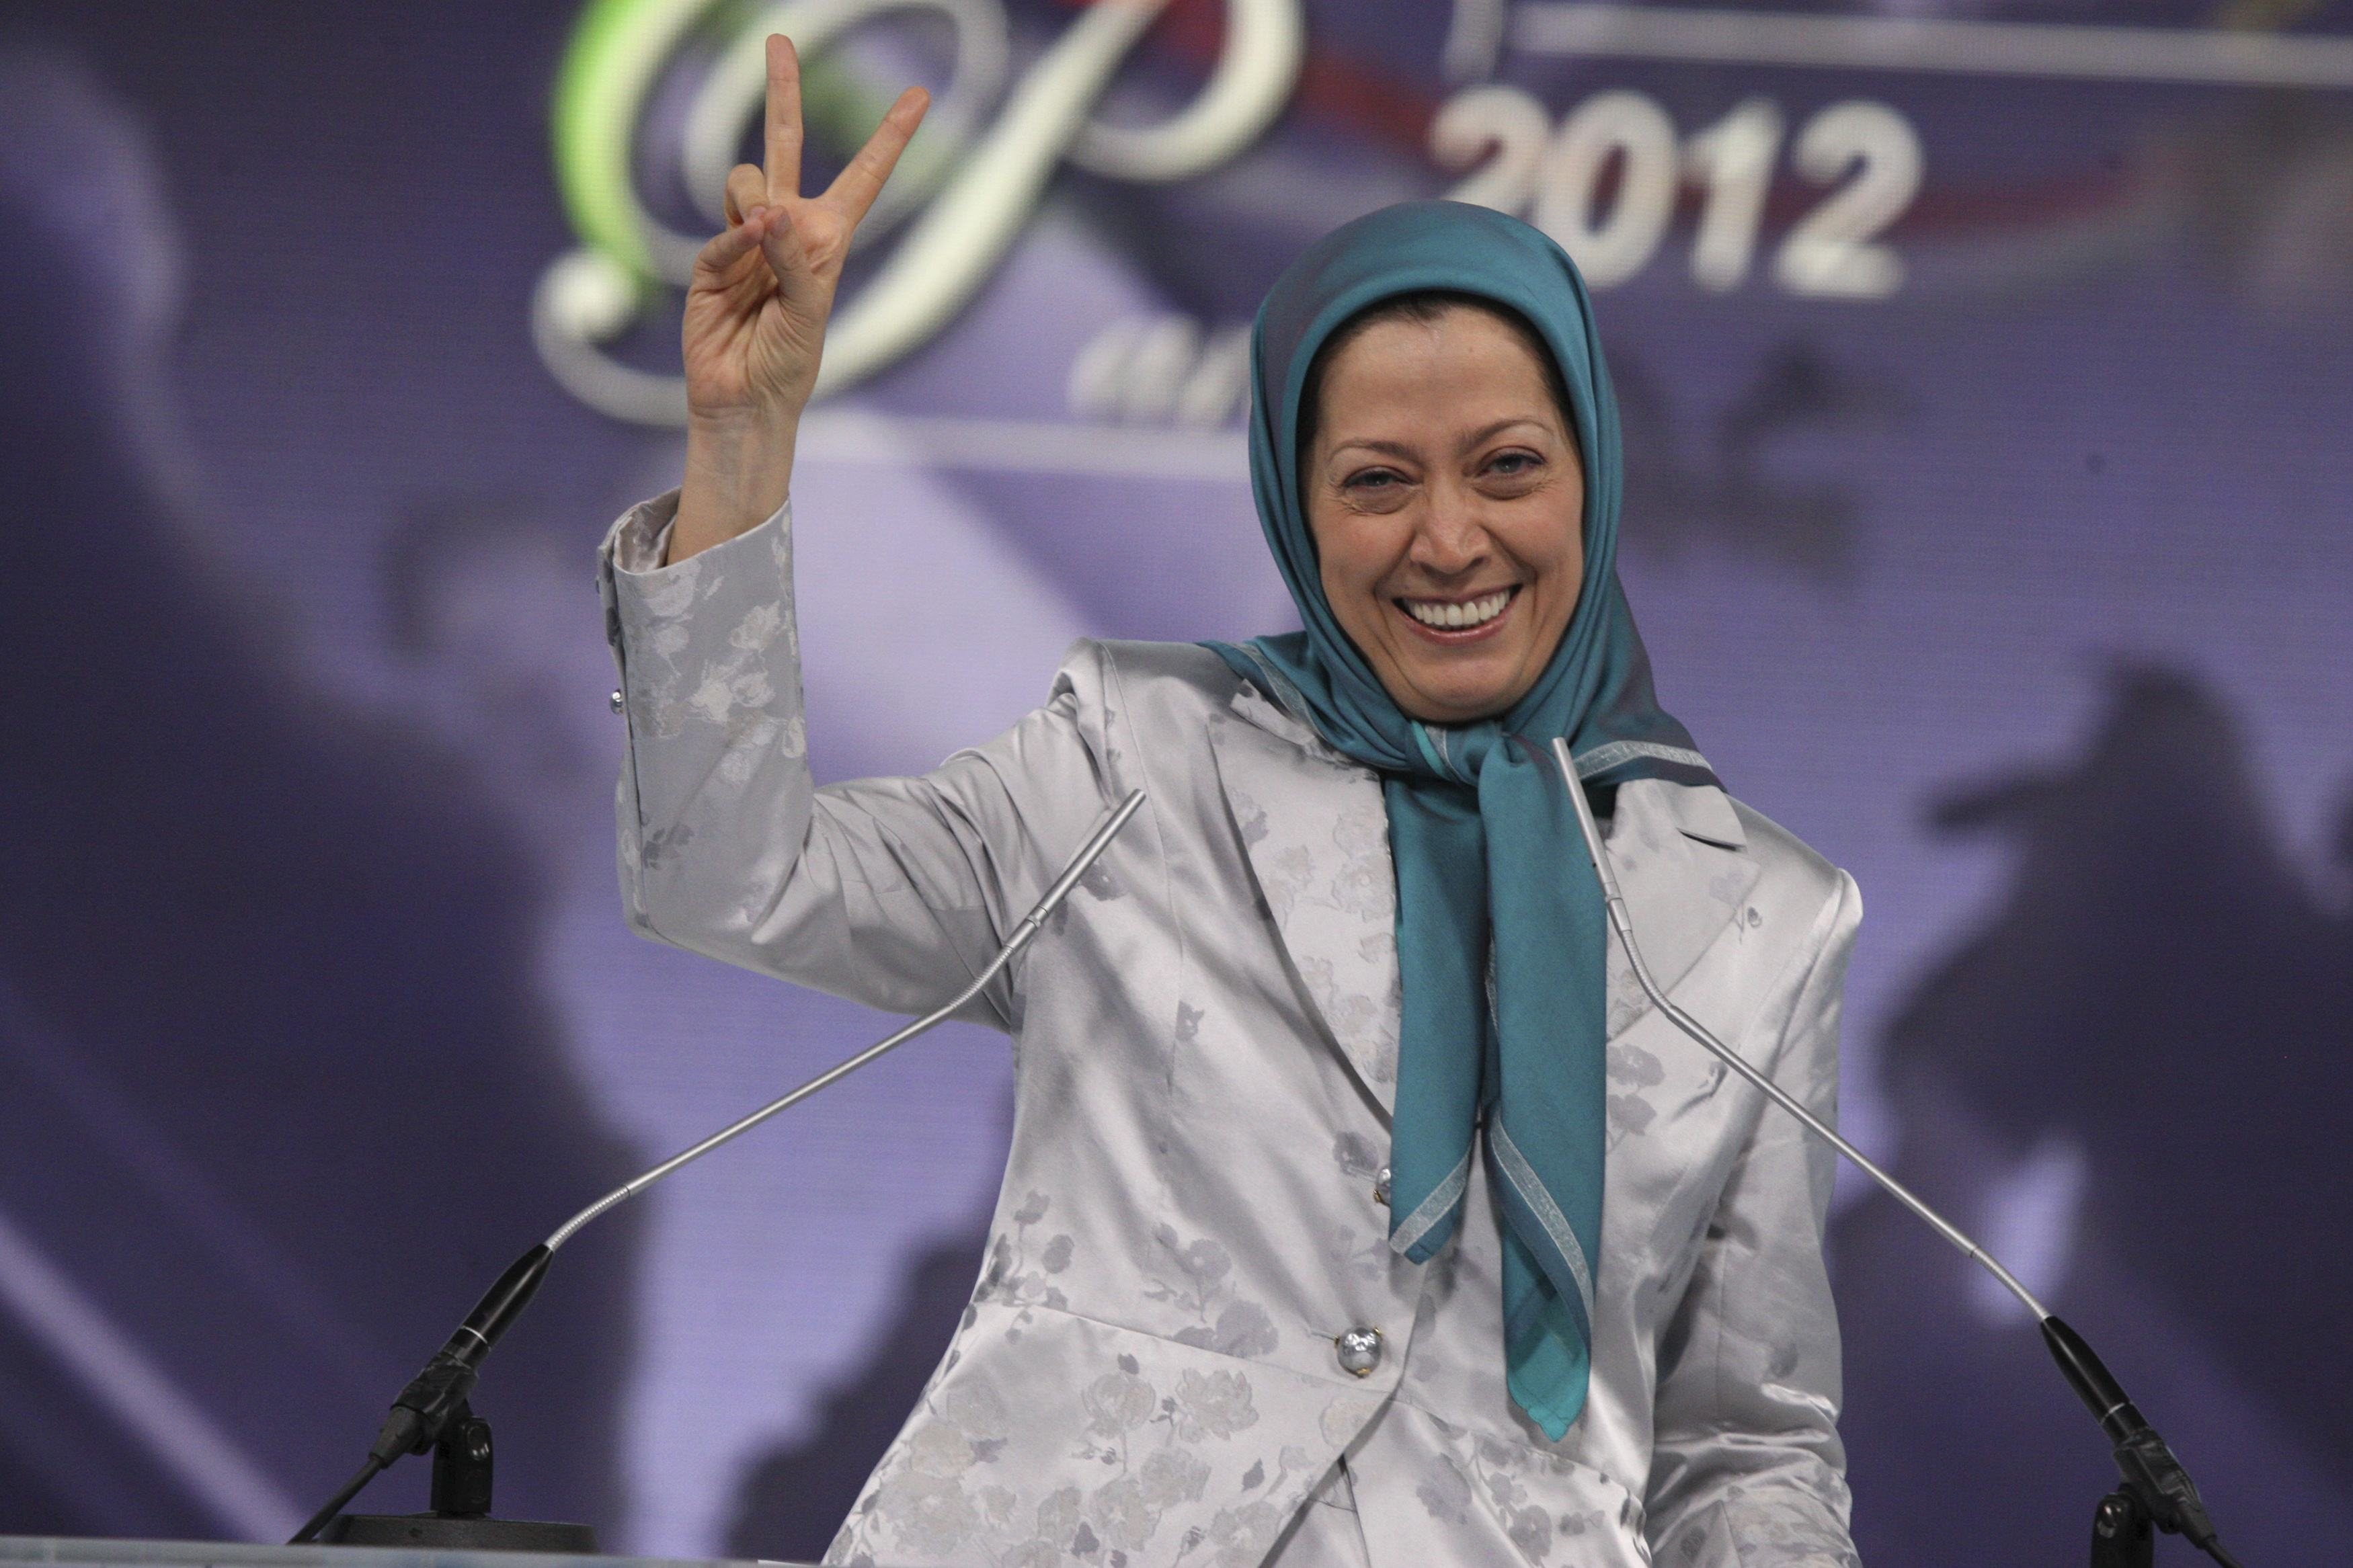 Rajavi, who heads NCRI, gestures as she attends a rally in Villepinte